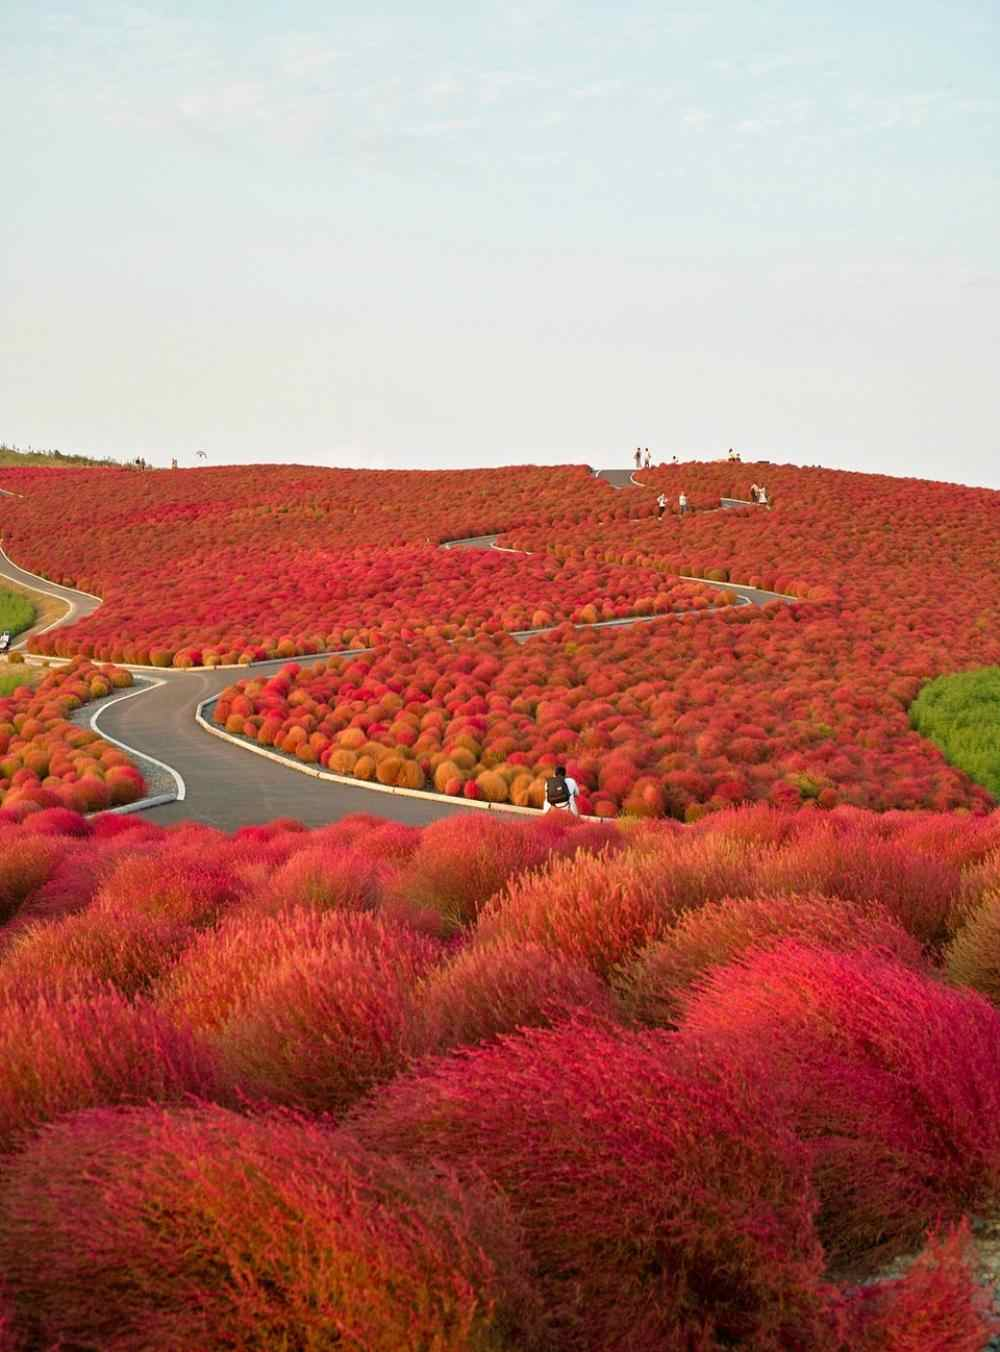 http://all-that-is-interesting.com/wordpress/wp-content/uploads/2012/04/kochia-hill-hitachinaka-city-japan.jpg